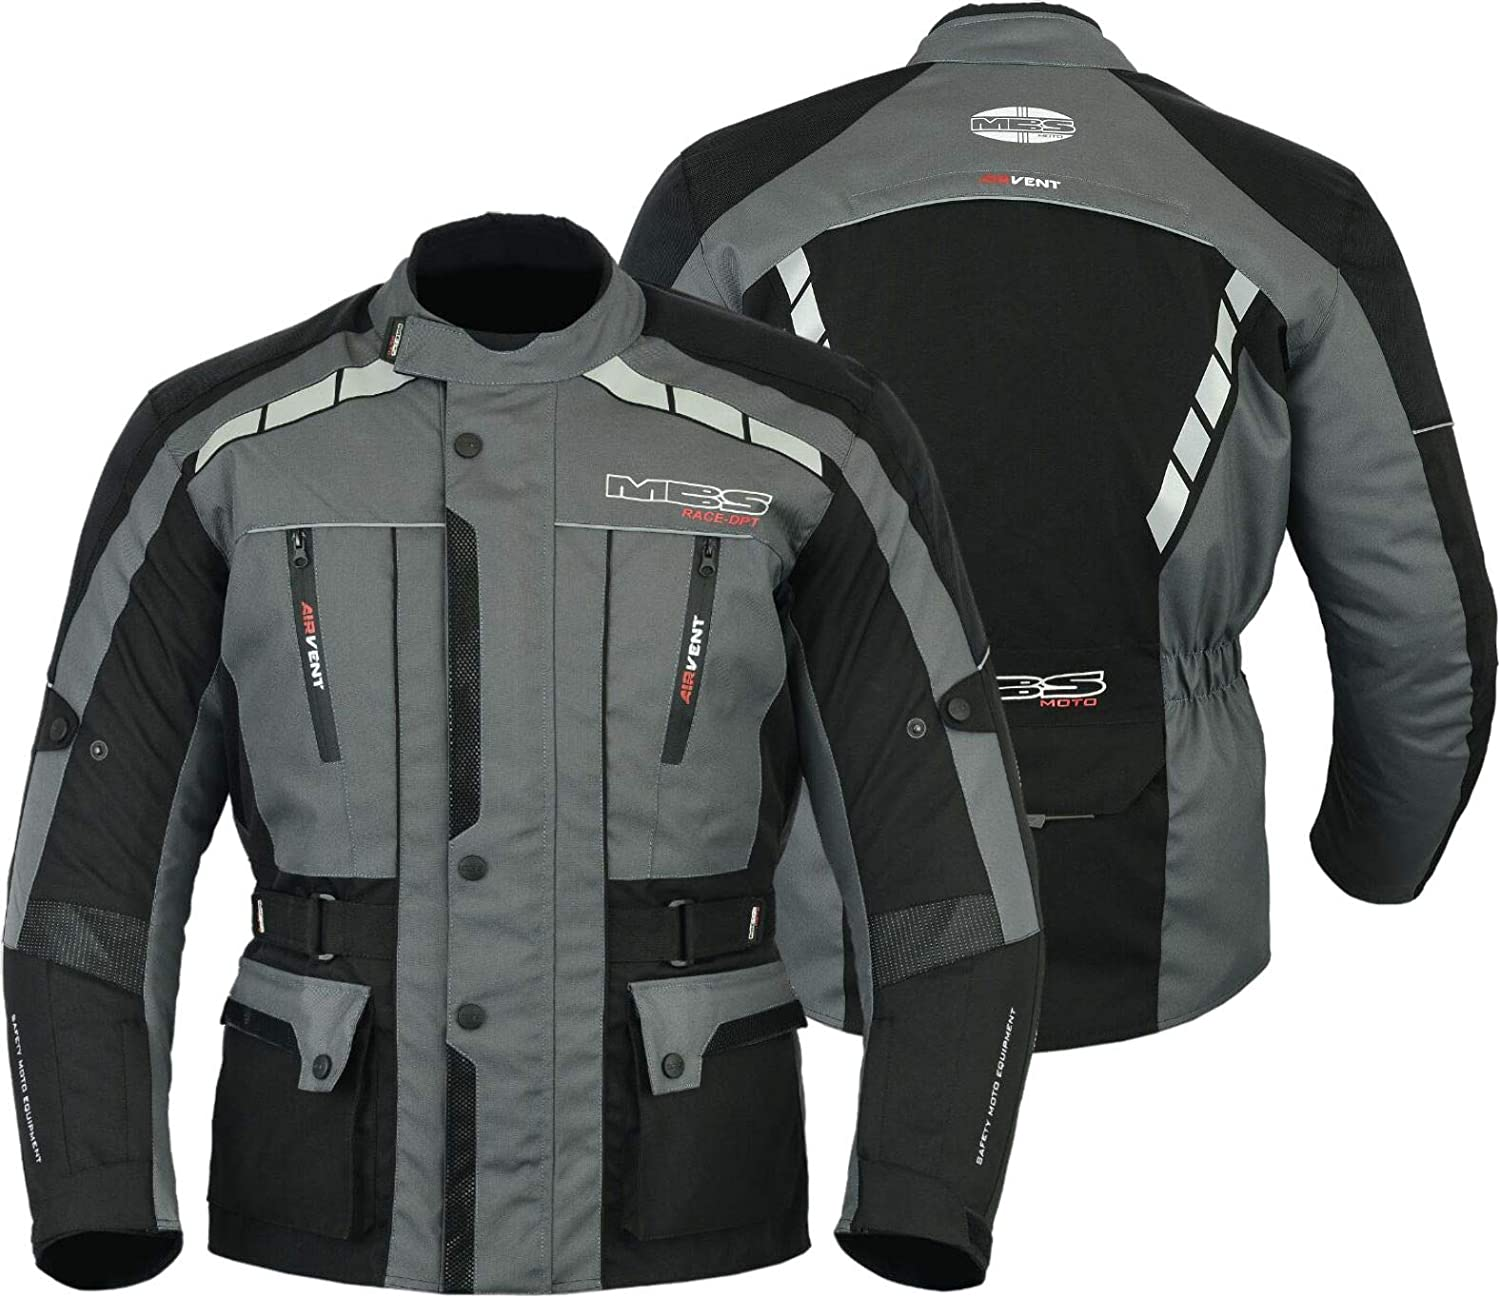 Antracita, S MBSmoto MJ-21 James Motorcycle Bike Textile Touring Racing Chaqueta larga impermeable para hombre de Cordura